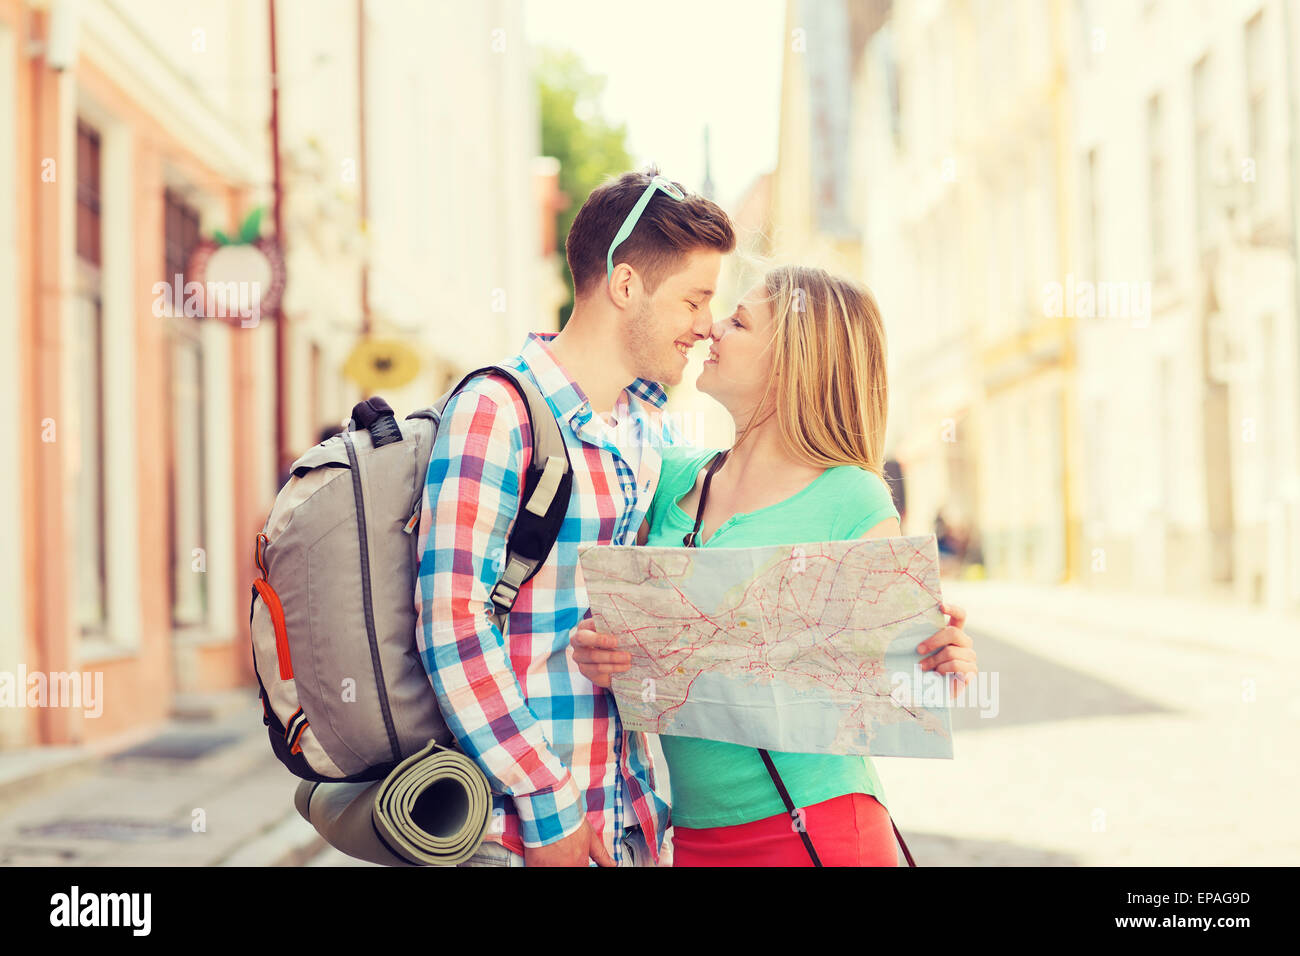 smiling couple with map and backpack in city - Stock Image